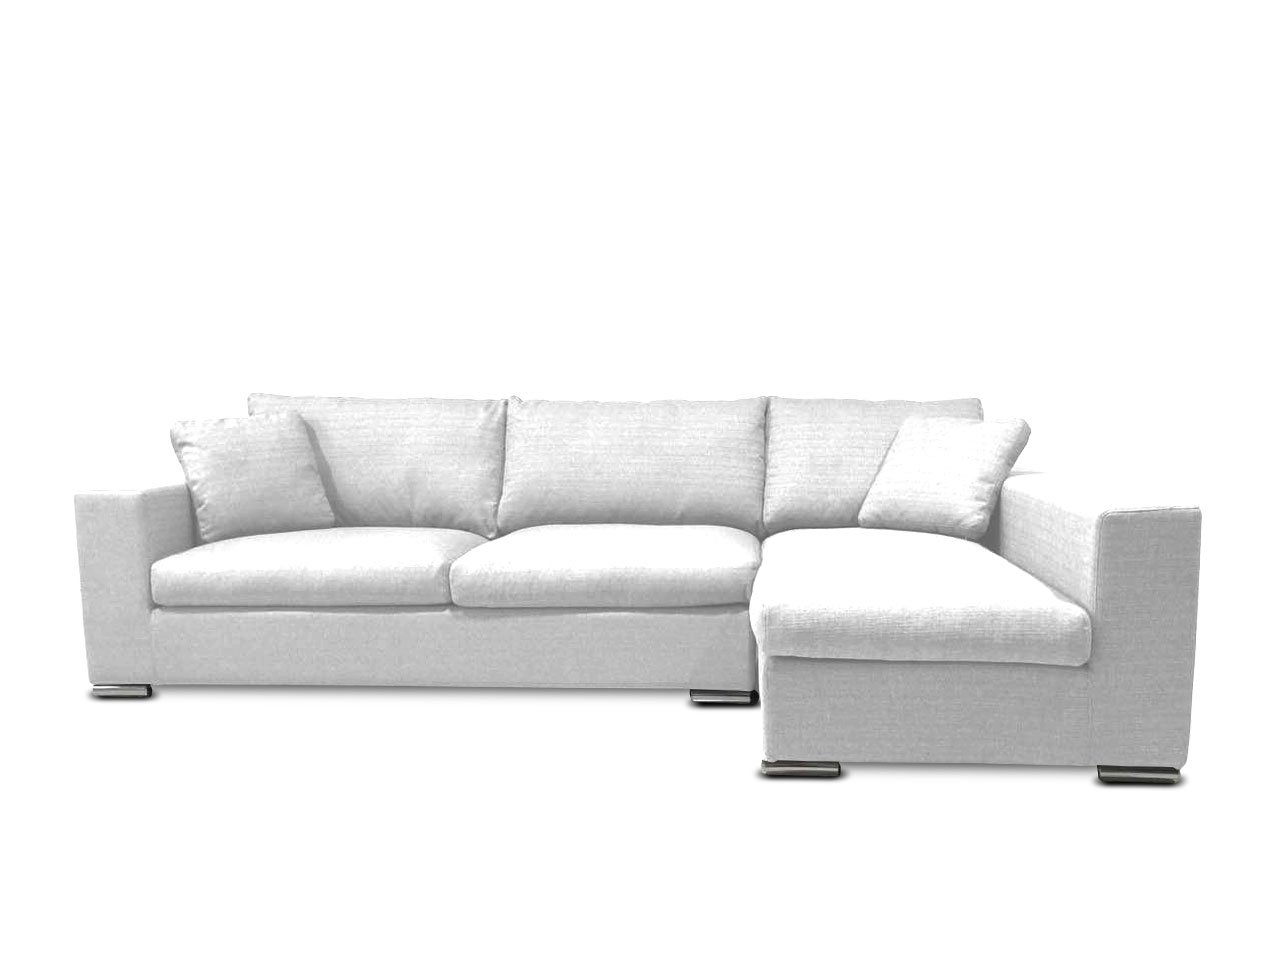 KMP Furniture Coleen Sectional Sofa Right Chaise Lounge – White